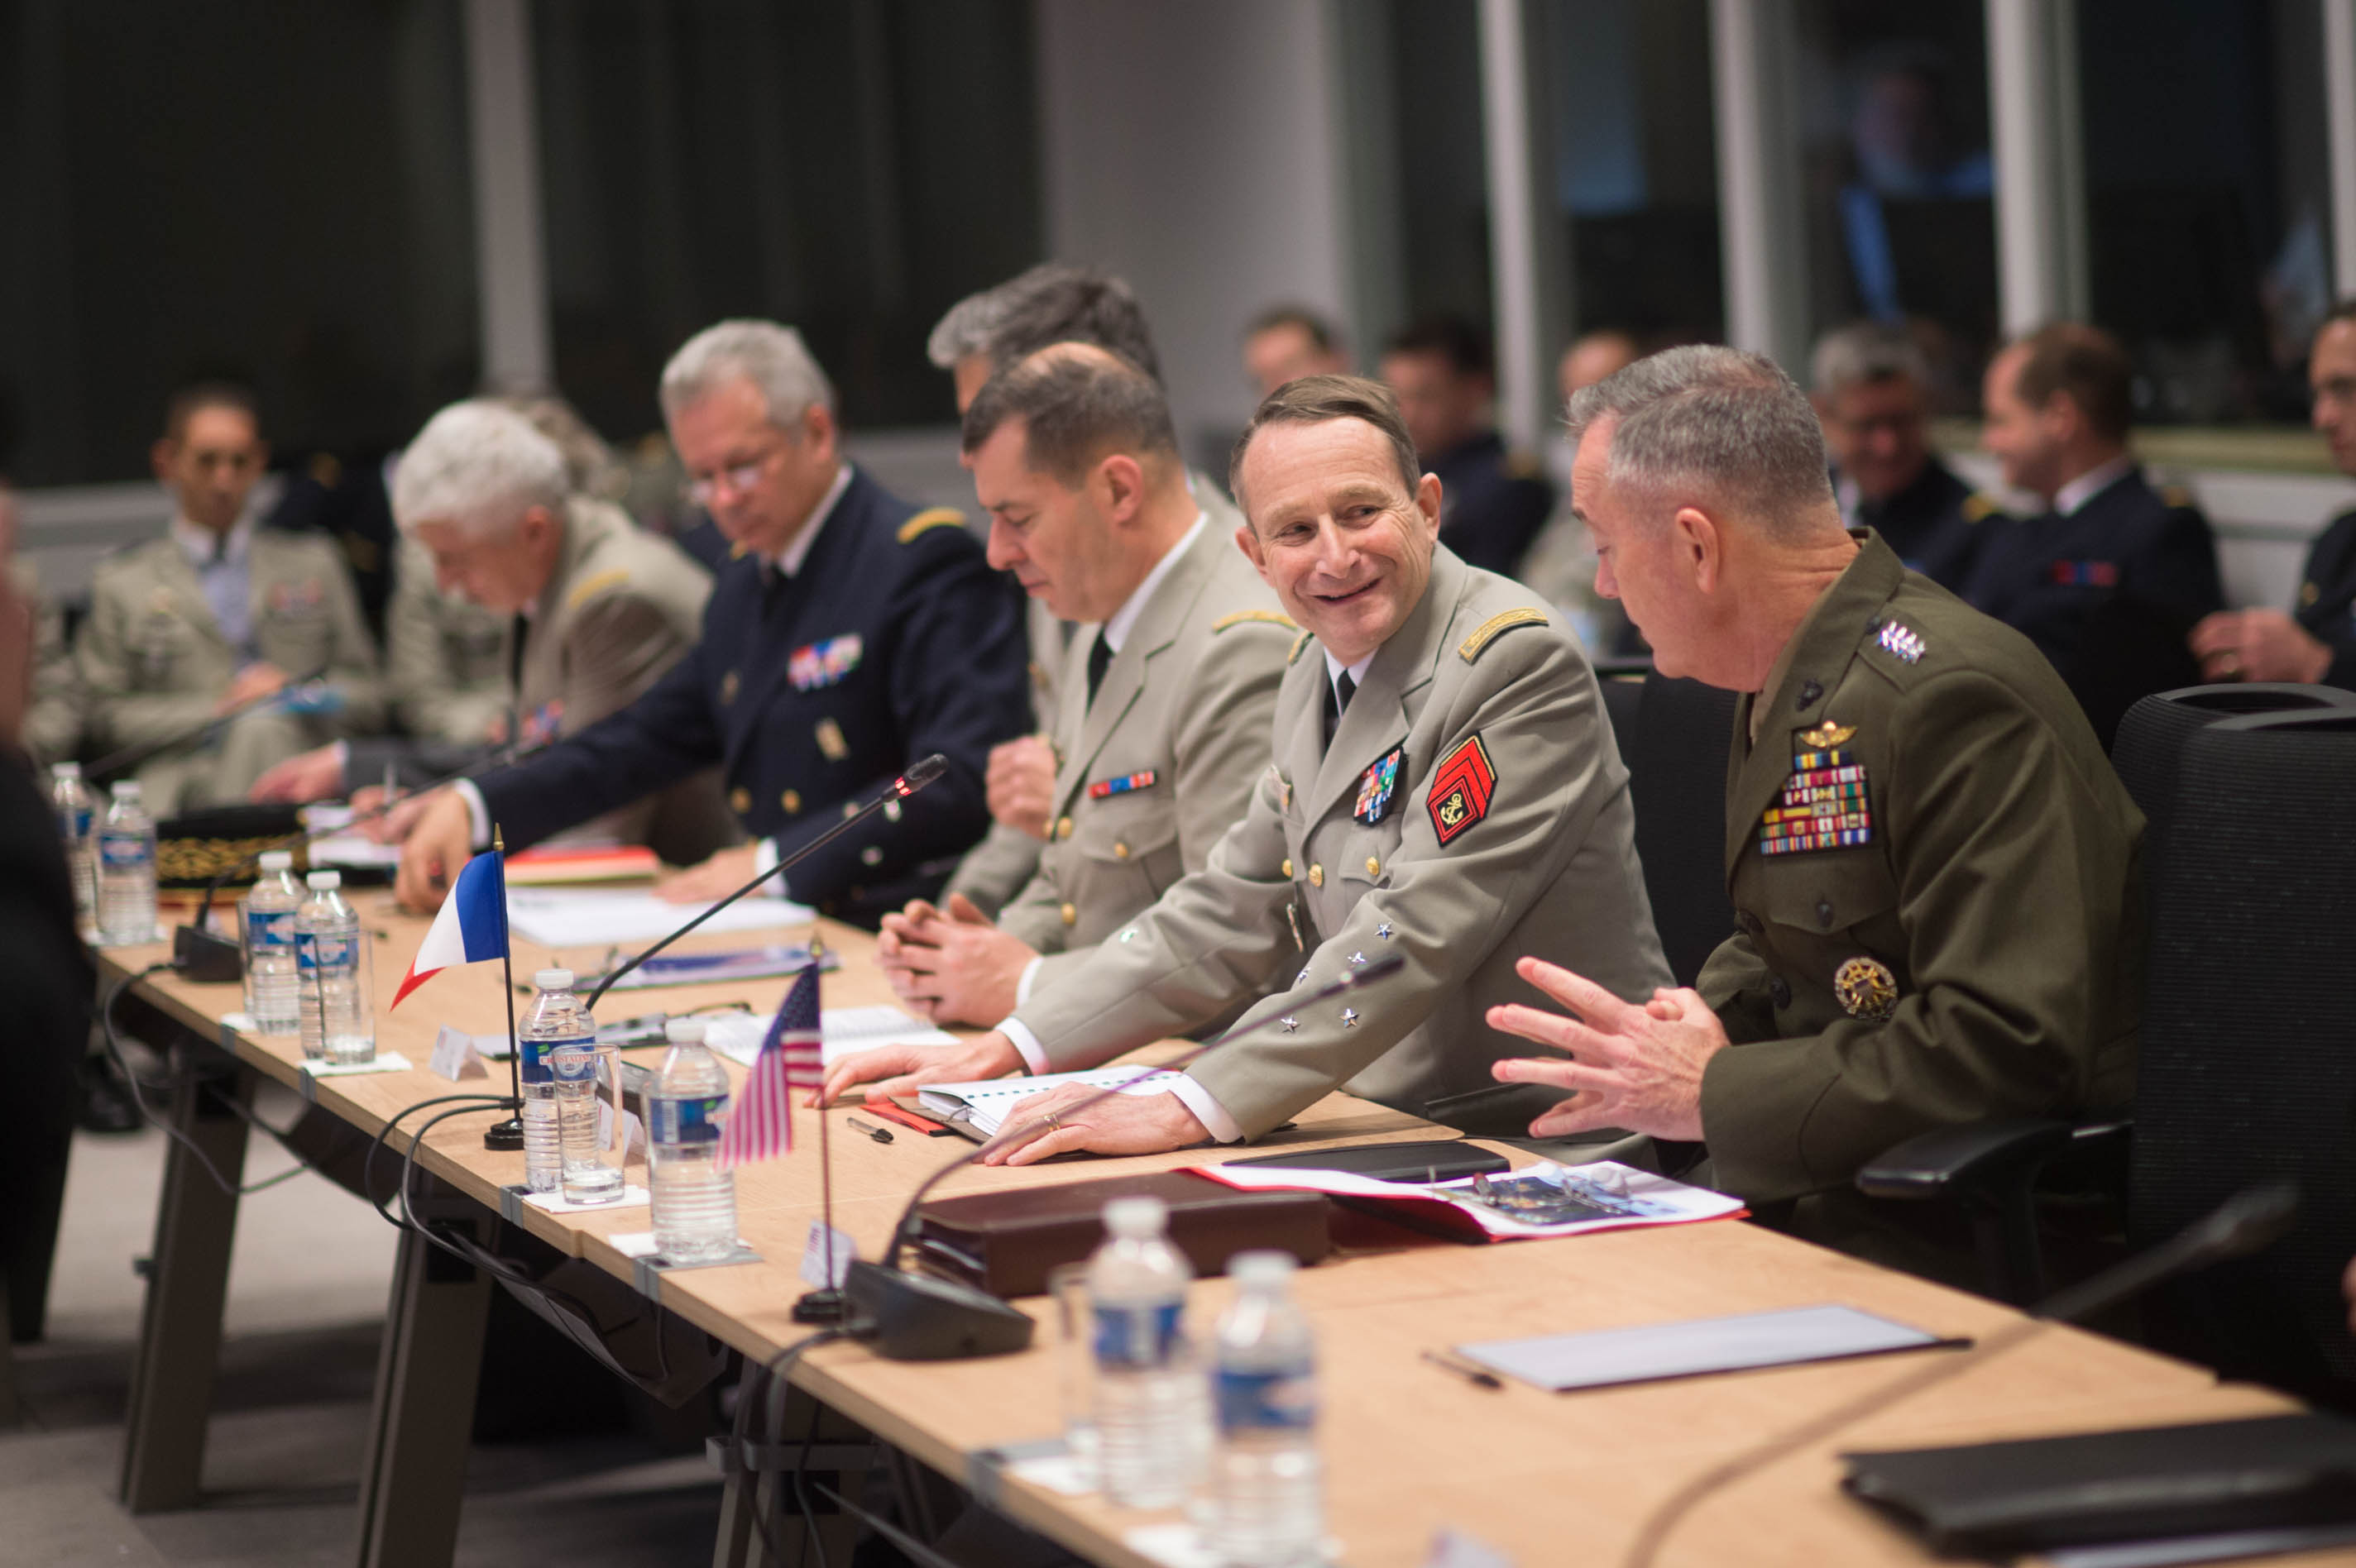 U.S. Marine Corps Gen. Joseph F. Dunford Jr., right, chairman of the Joint Chiefs of Staff, and Gen. Pierre de Villiers, chief of France's defense staff, talk during a meeting at the French defense headquarters in Paris, Jan. 22, 2016